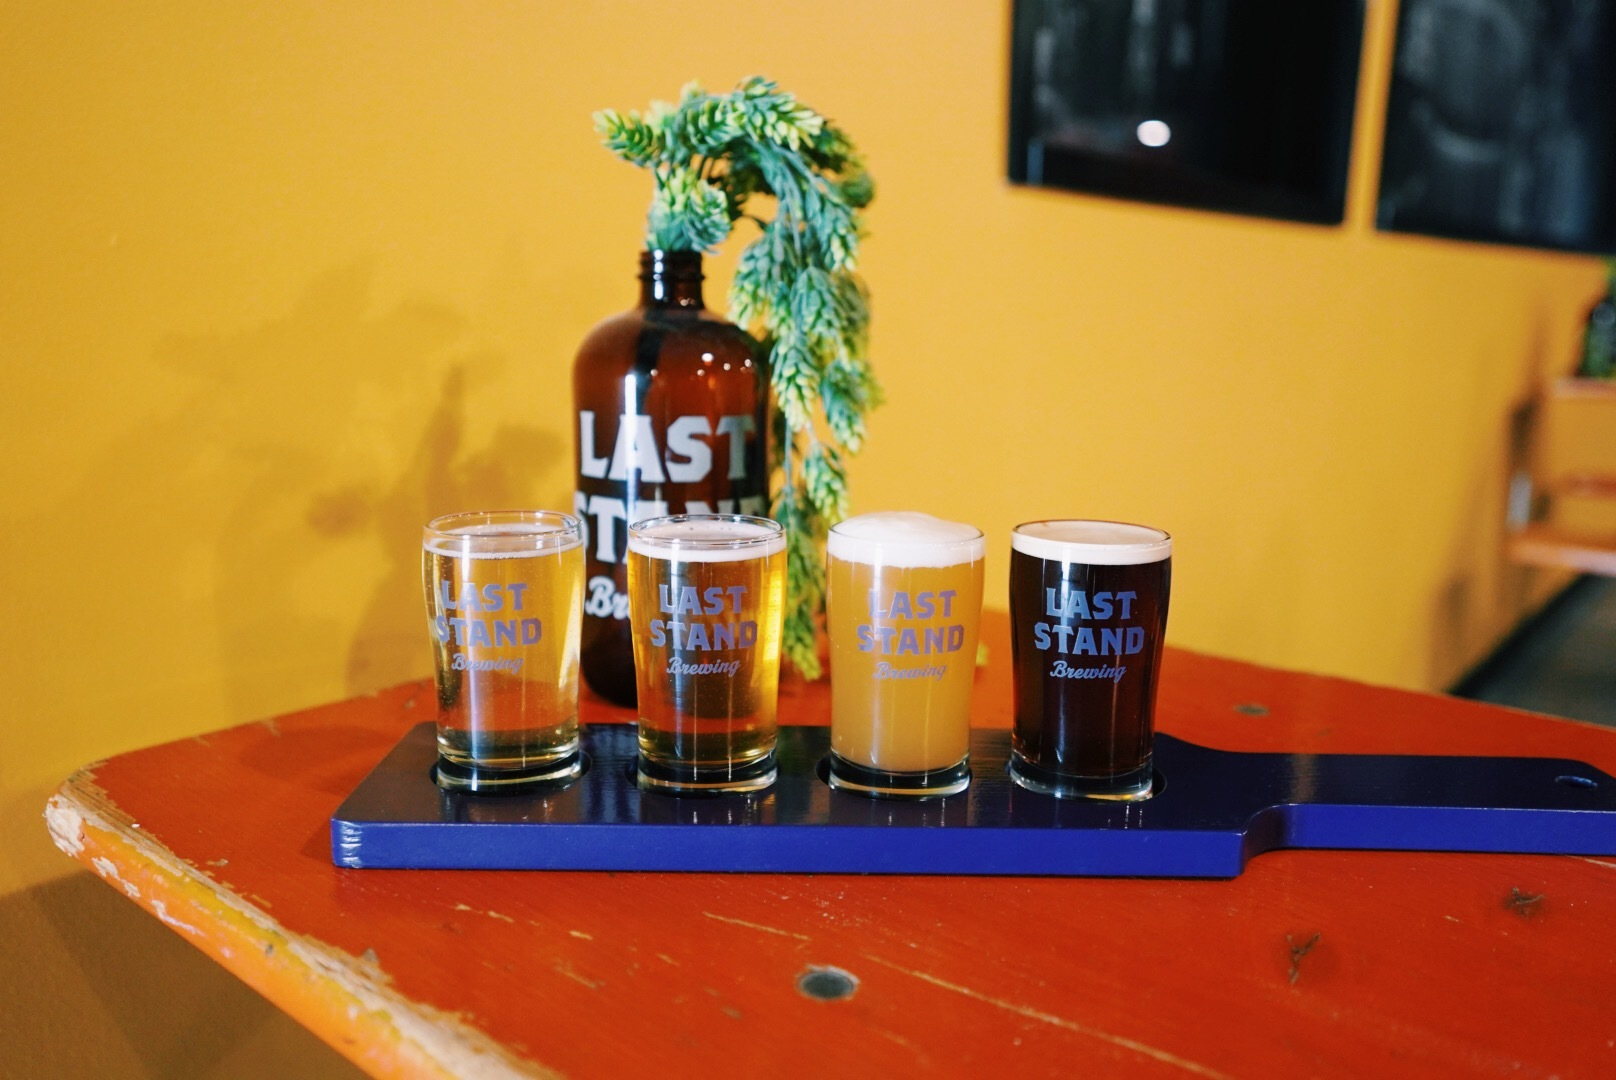 The beer flight from Last Stand